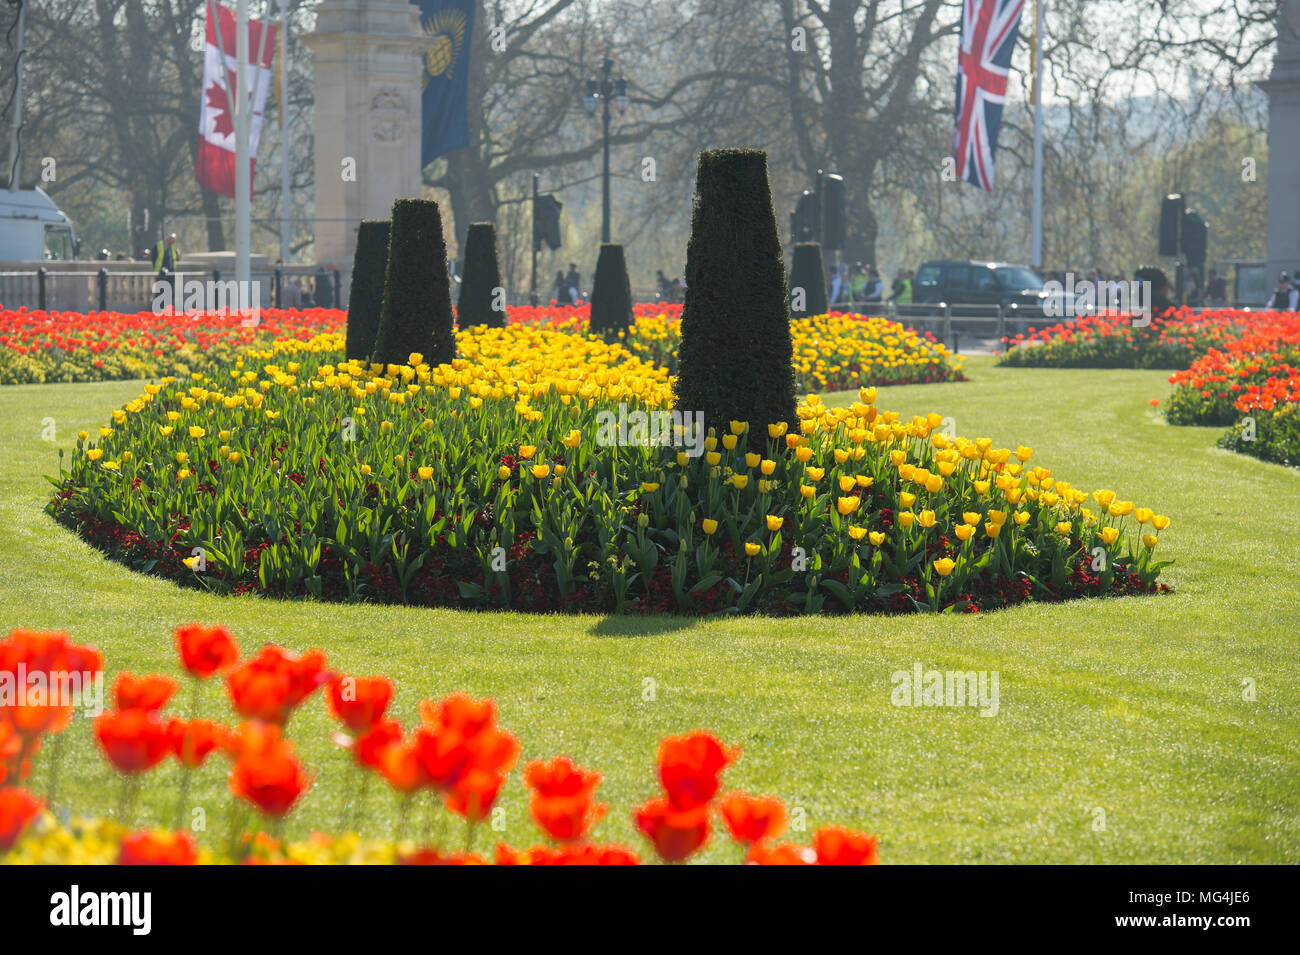 19 April 2018. Hot Spring weather with tulips on display outside Buckingham Palace, London, UK - Stock Image